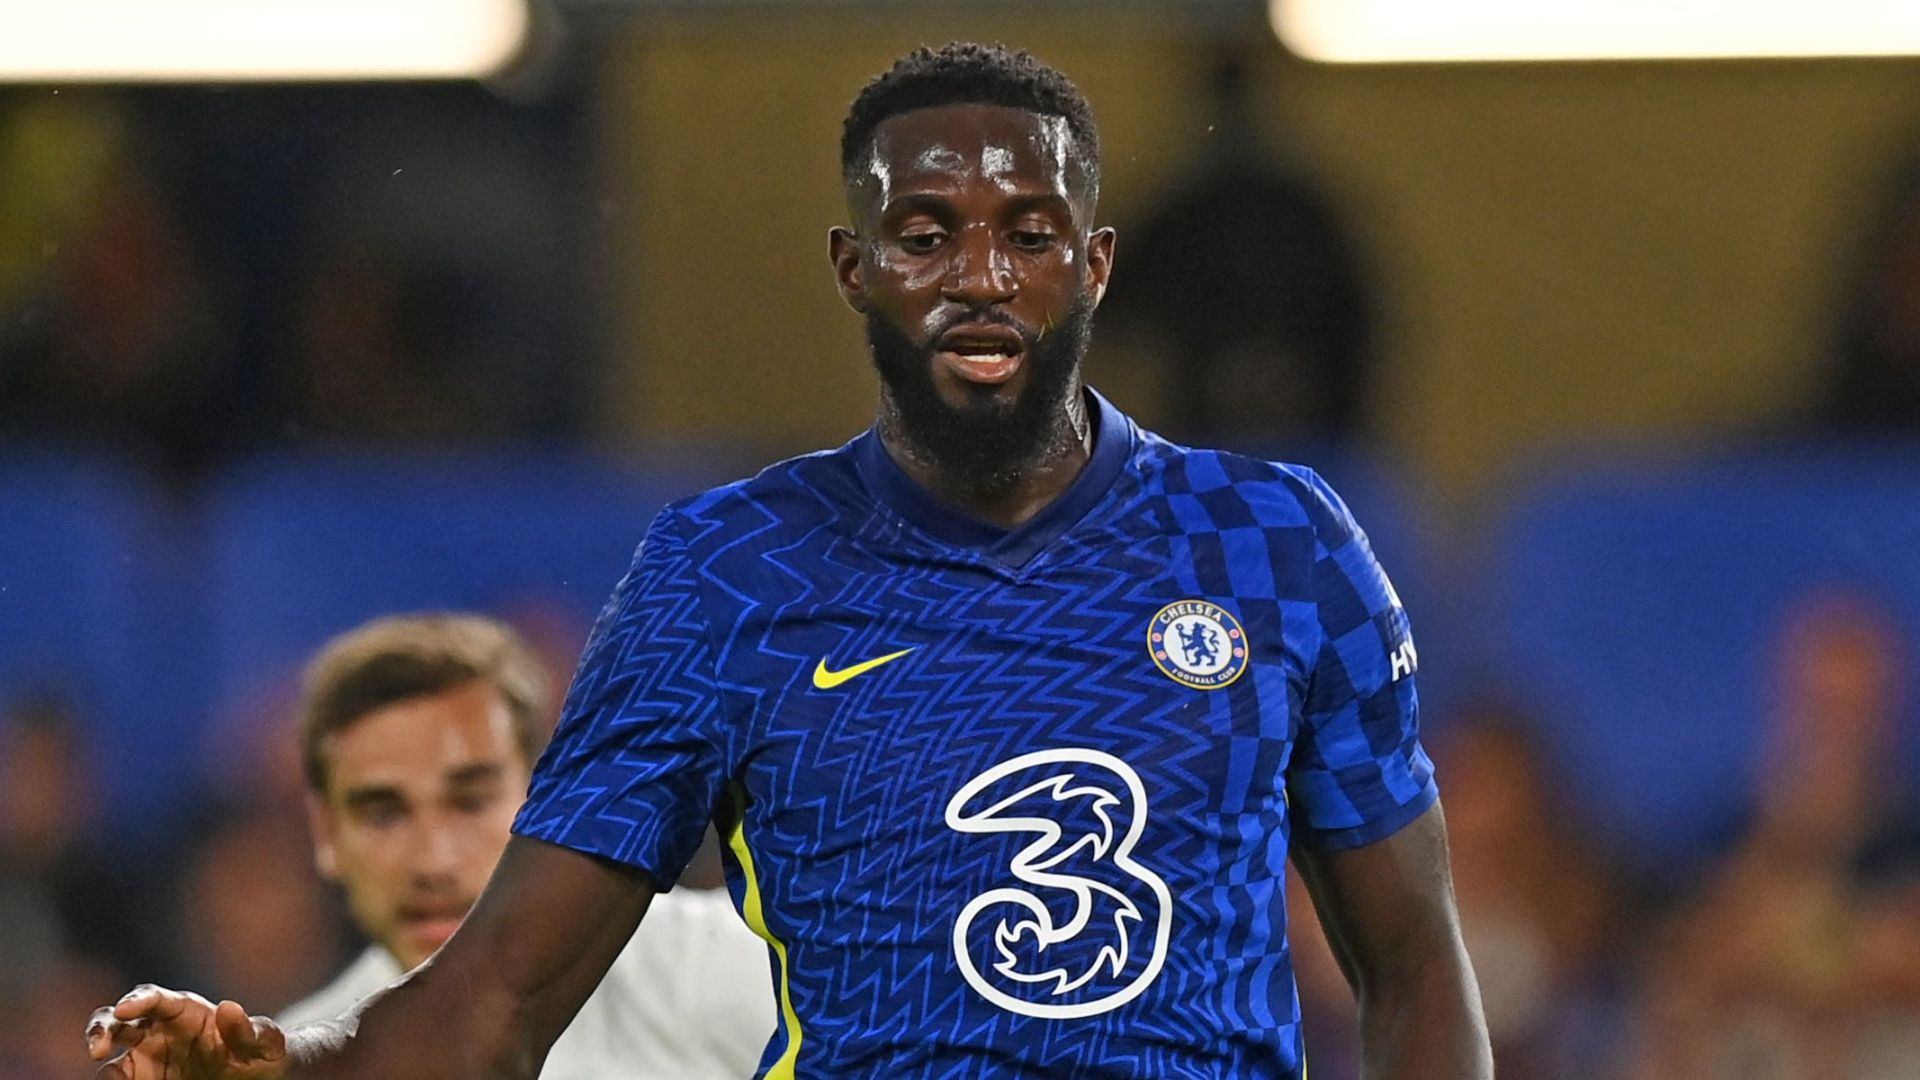 Bakayoko set for two-year AC Milan loan as Chelsea star gears up for new contract